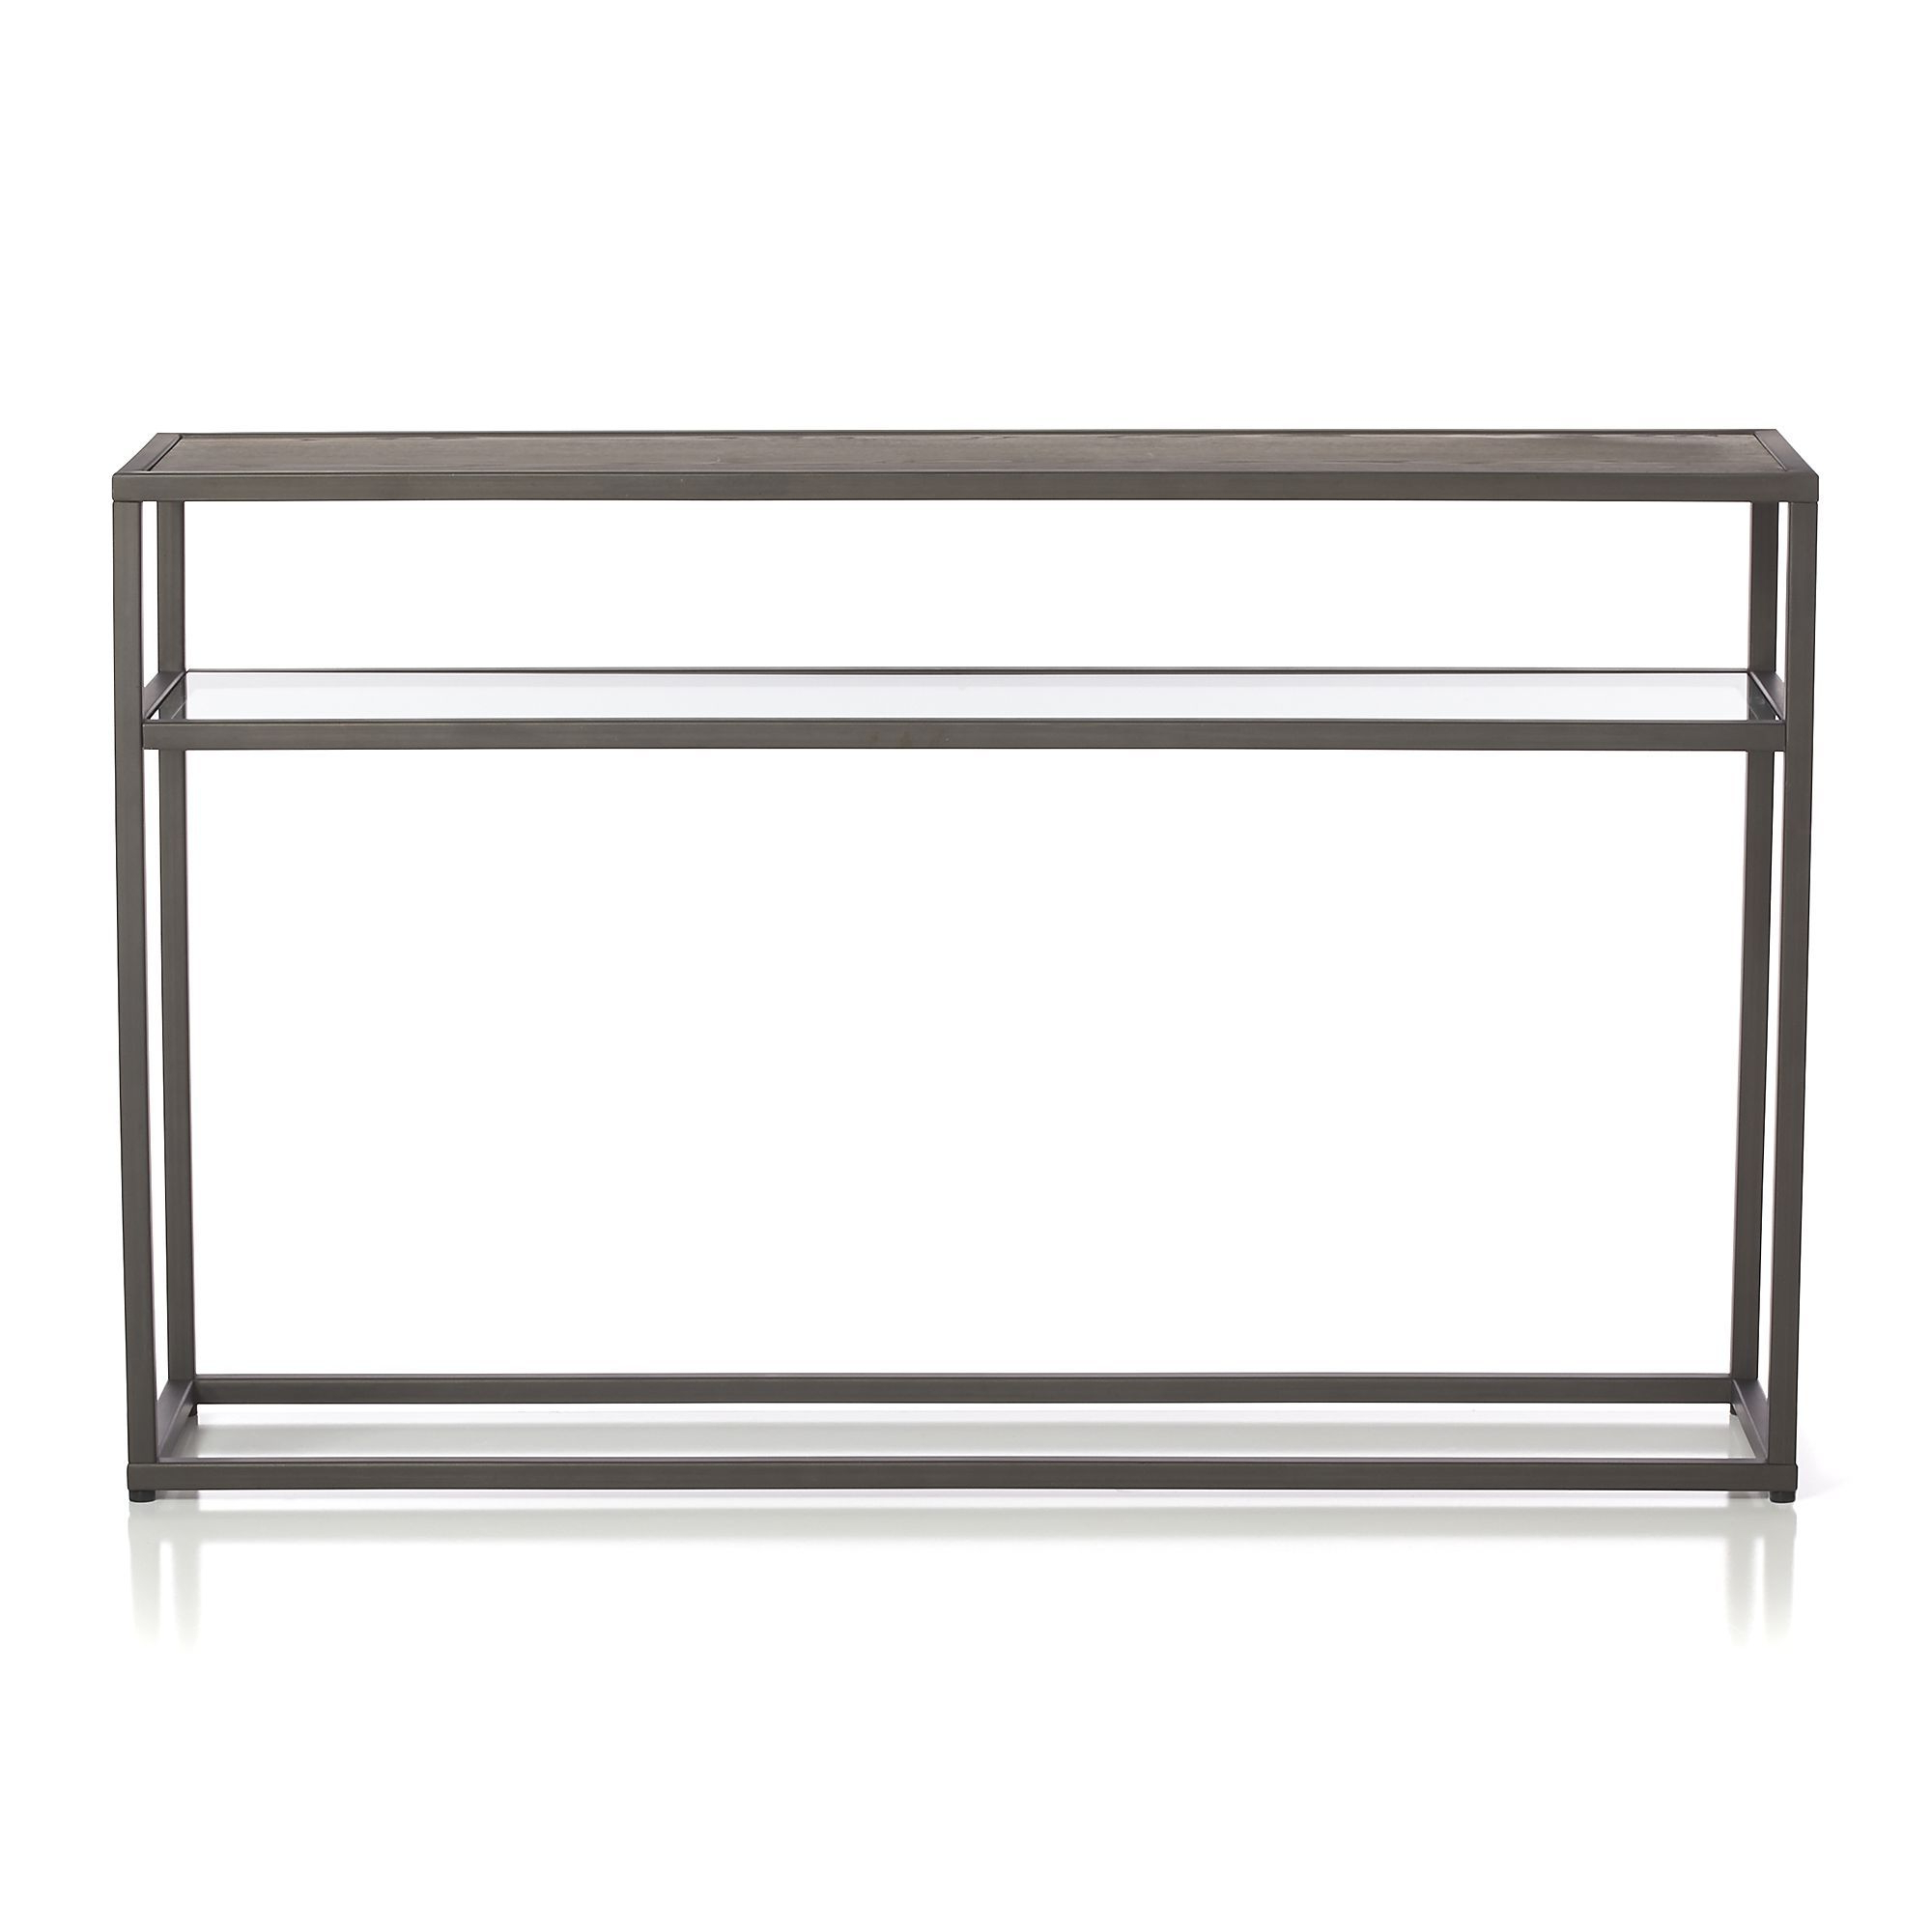 Switch Console Table | Crate And Barrel | Apartment Stuff With Regard To Switch Console Tables (View 17 of 20)